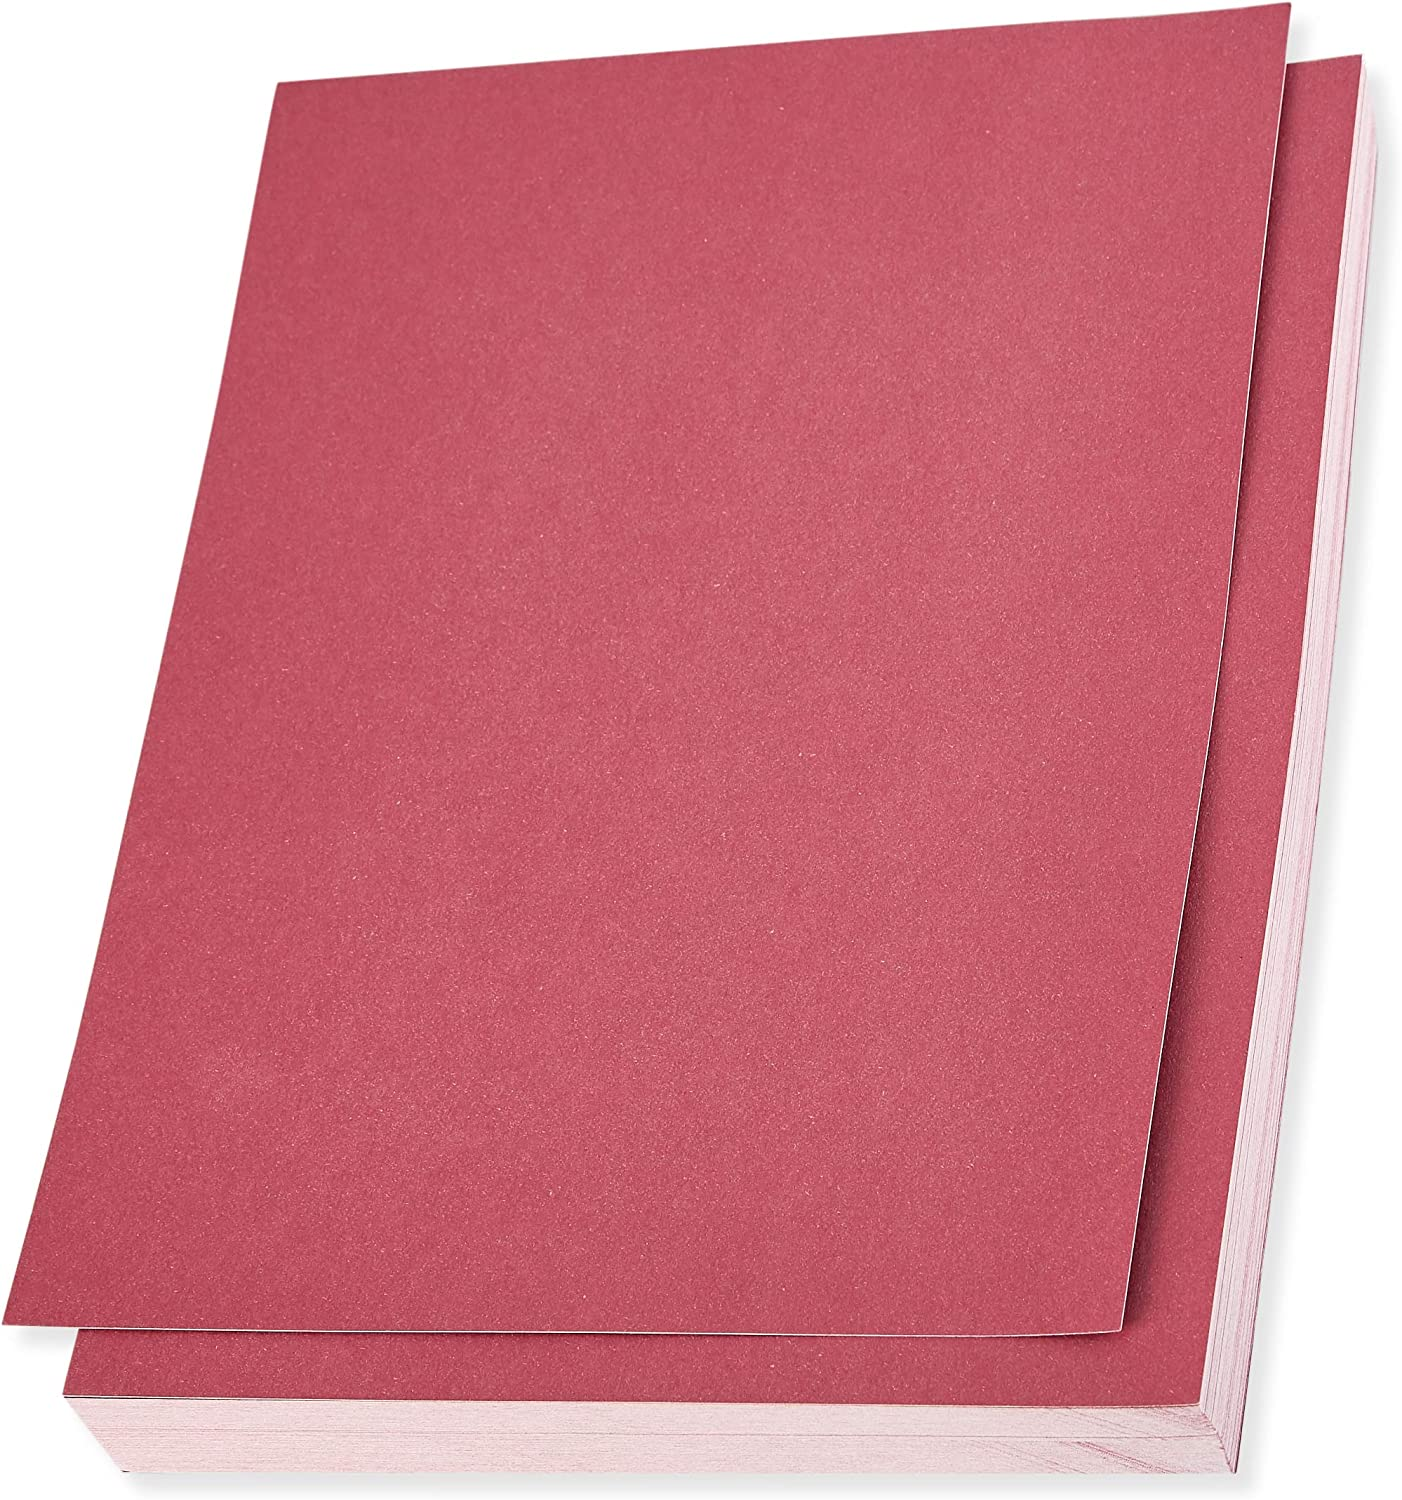 Rose Pink Shimmer Stationery Paper, Letter Size (8.5 x 11 in, 96 Sheets)